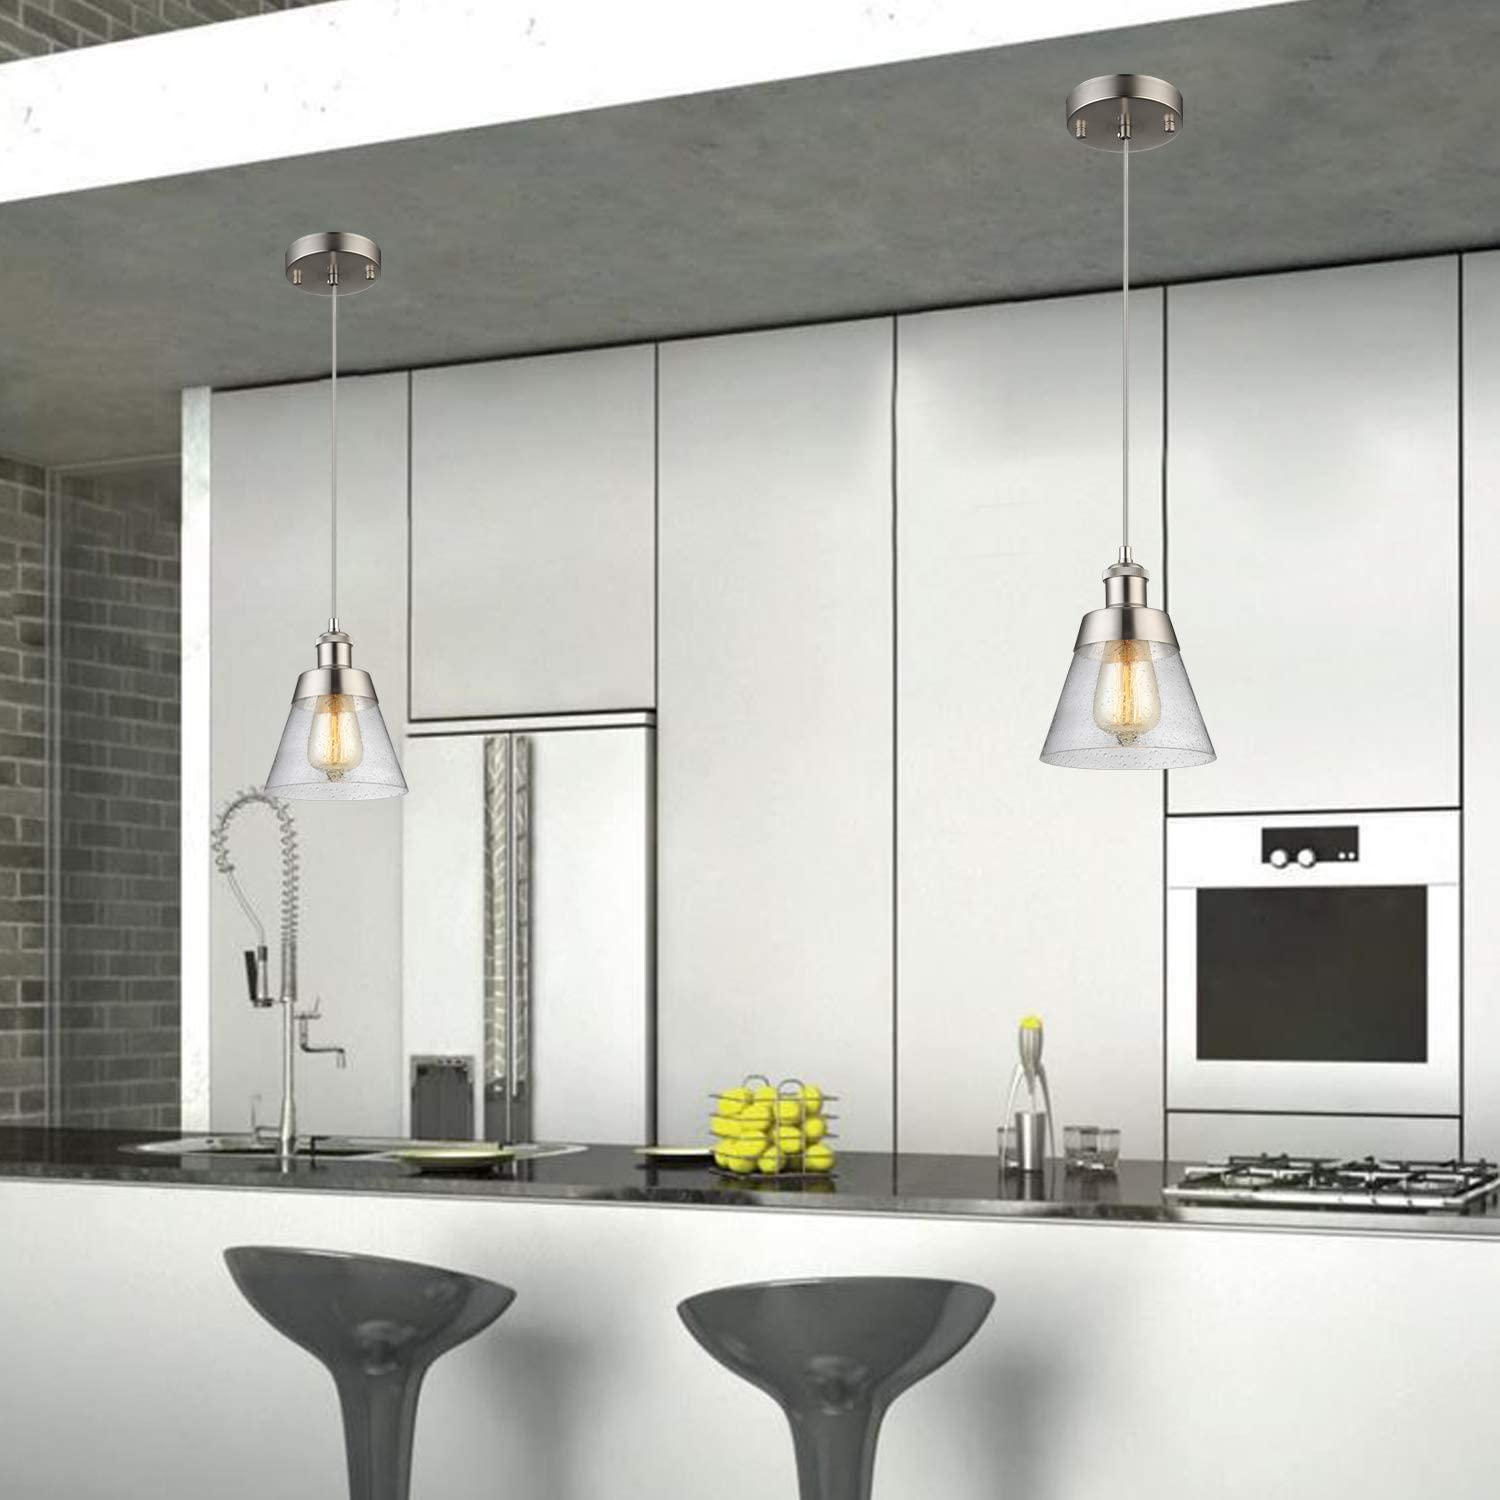 Modern Glass Pendant Light with Handblown Clear Seeded Glass Shade, One-Light Adjustable Industrial Mini Pendant Lighting Fixture for Kitchen Island Cafe Bar, Brushed Nickel